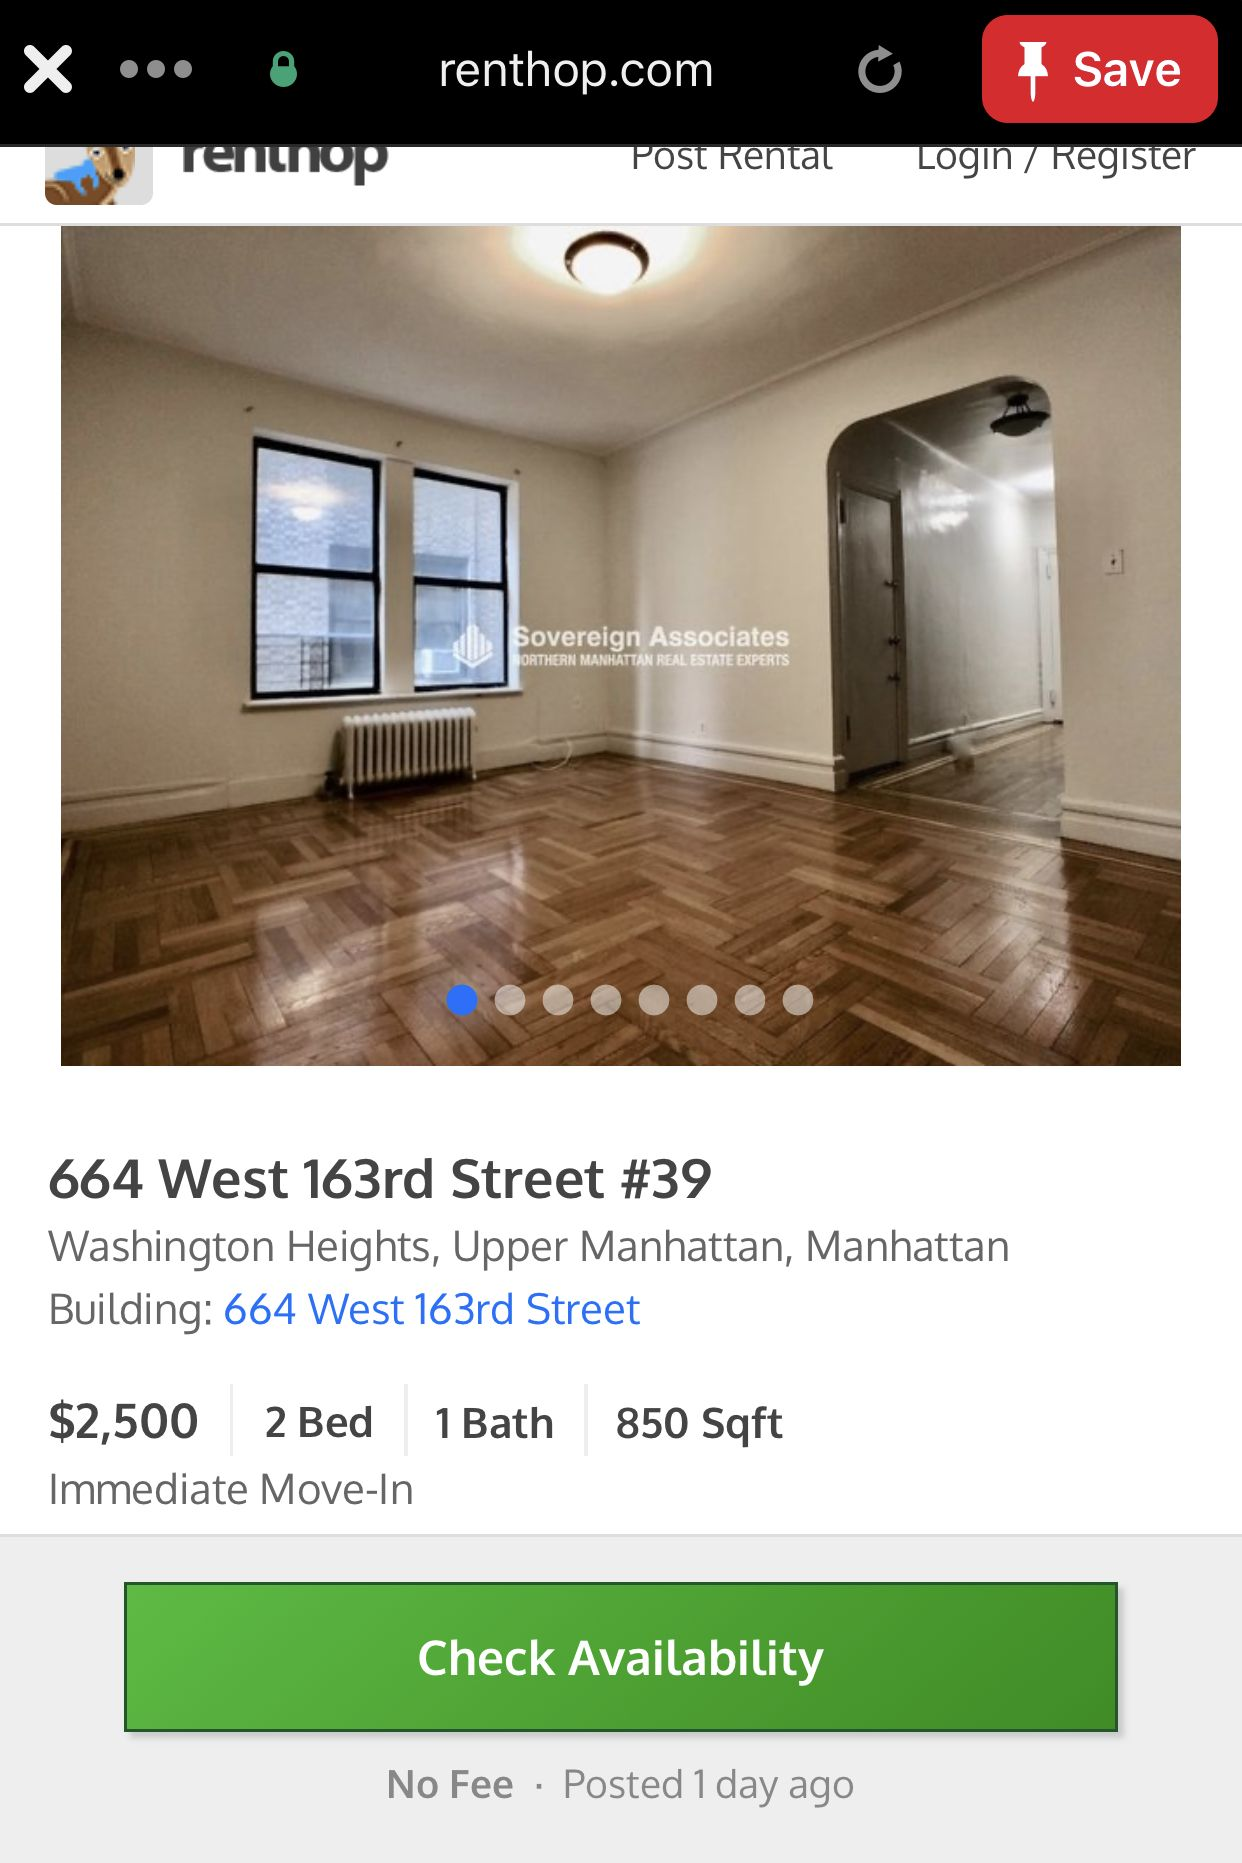 Washington Heights, NEW YORK apartment in 2020 Rent in